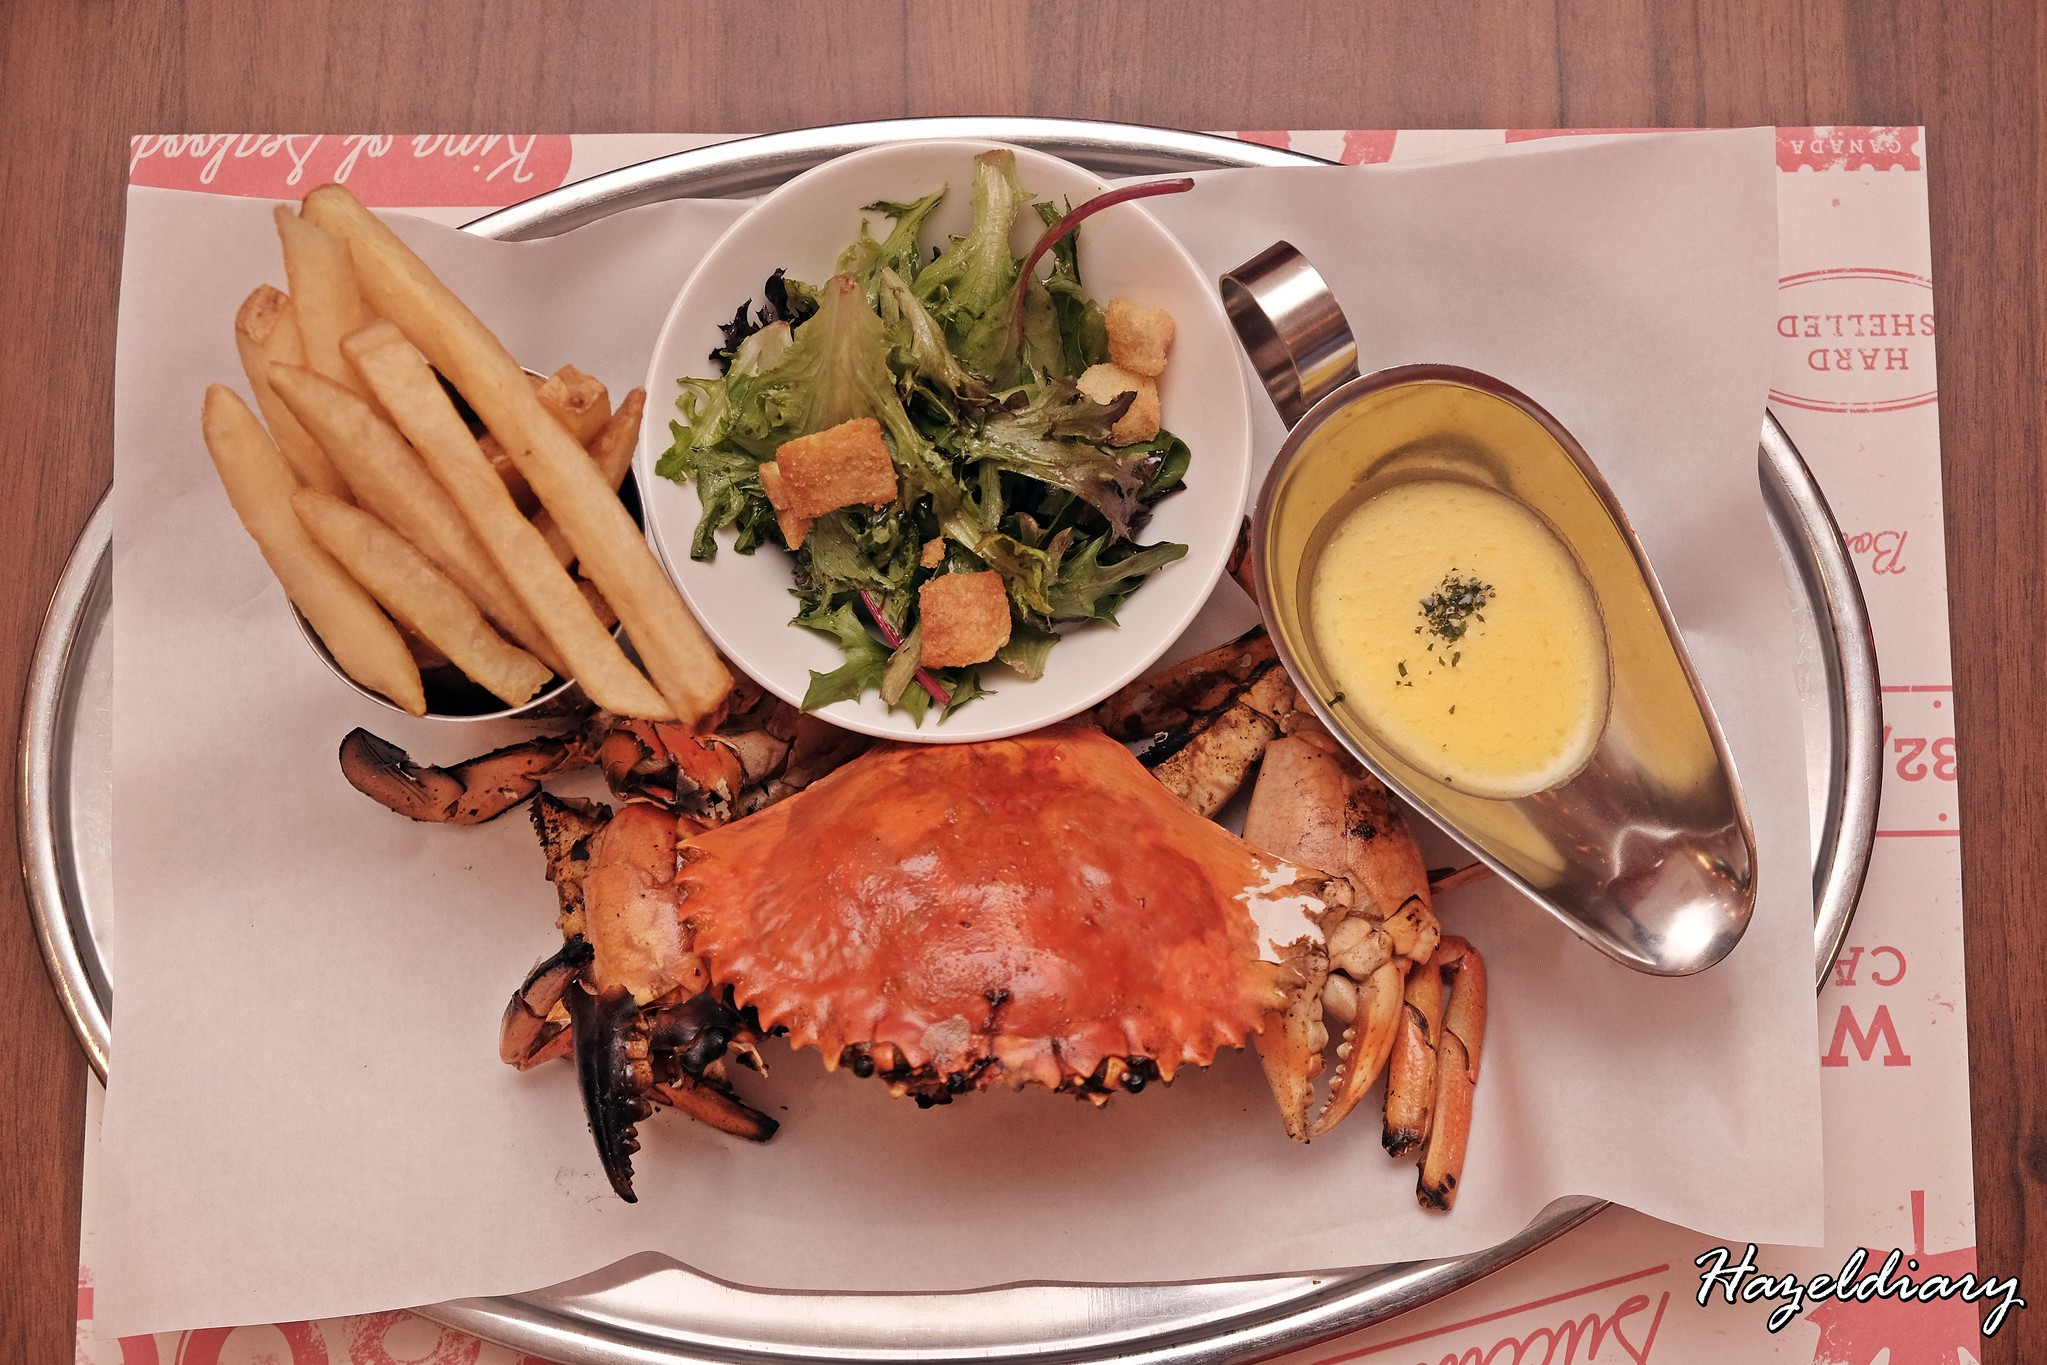 [SG EATS] Pince & Pints Restaurant And Bar – More Than Just Lobster Roll